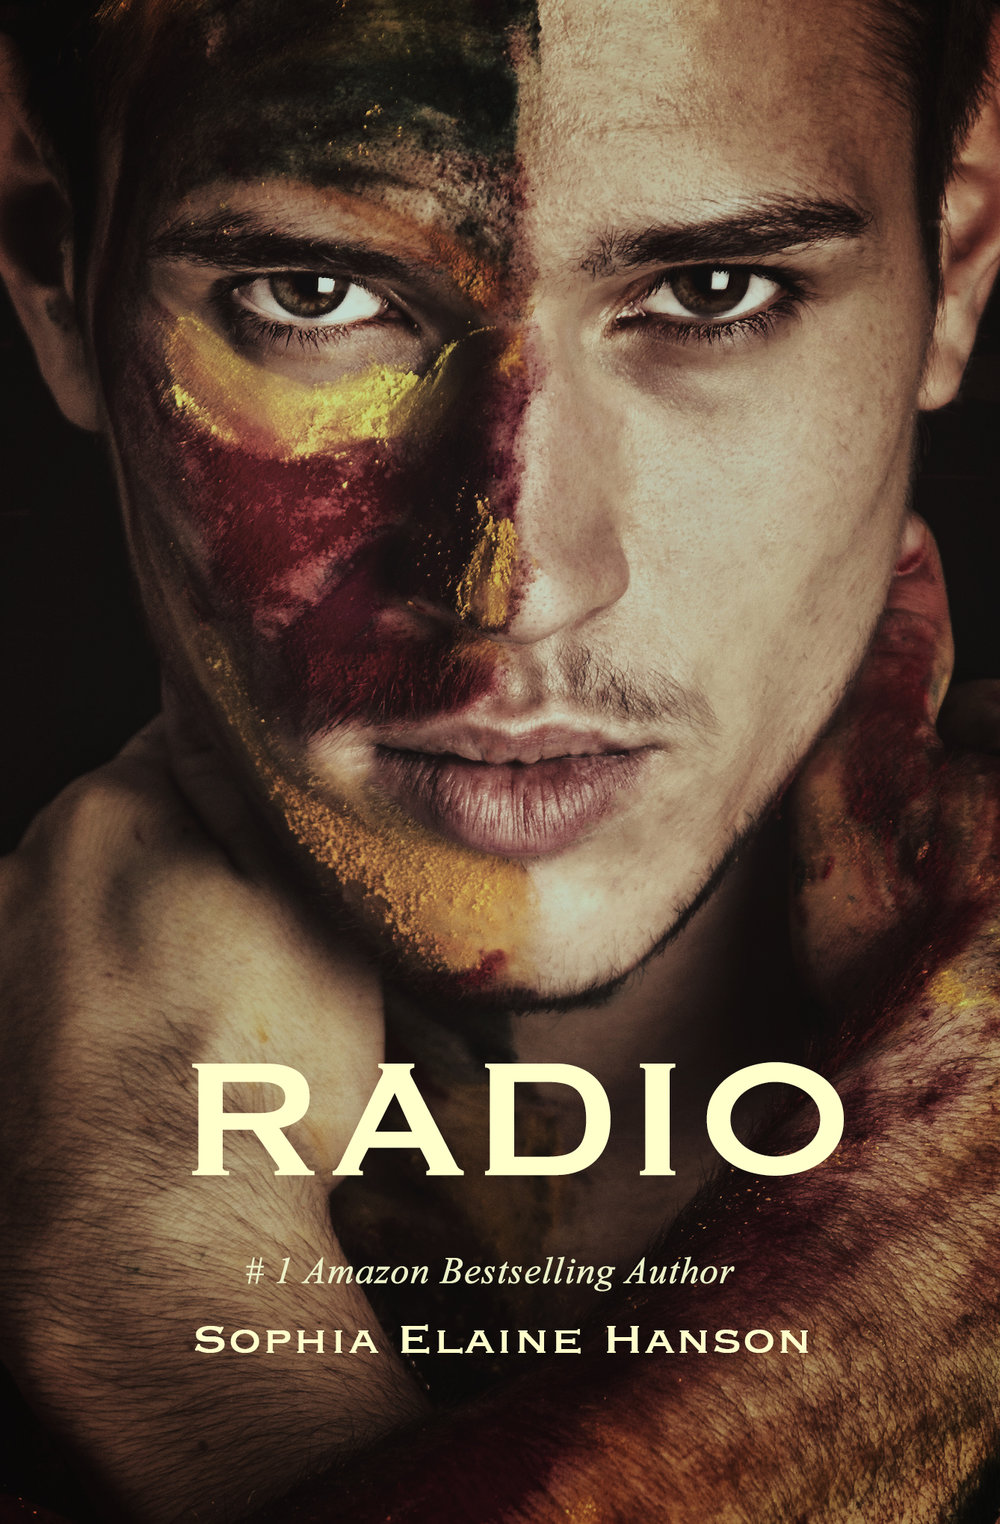 Radio by author Sophia Elaine Hanson